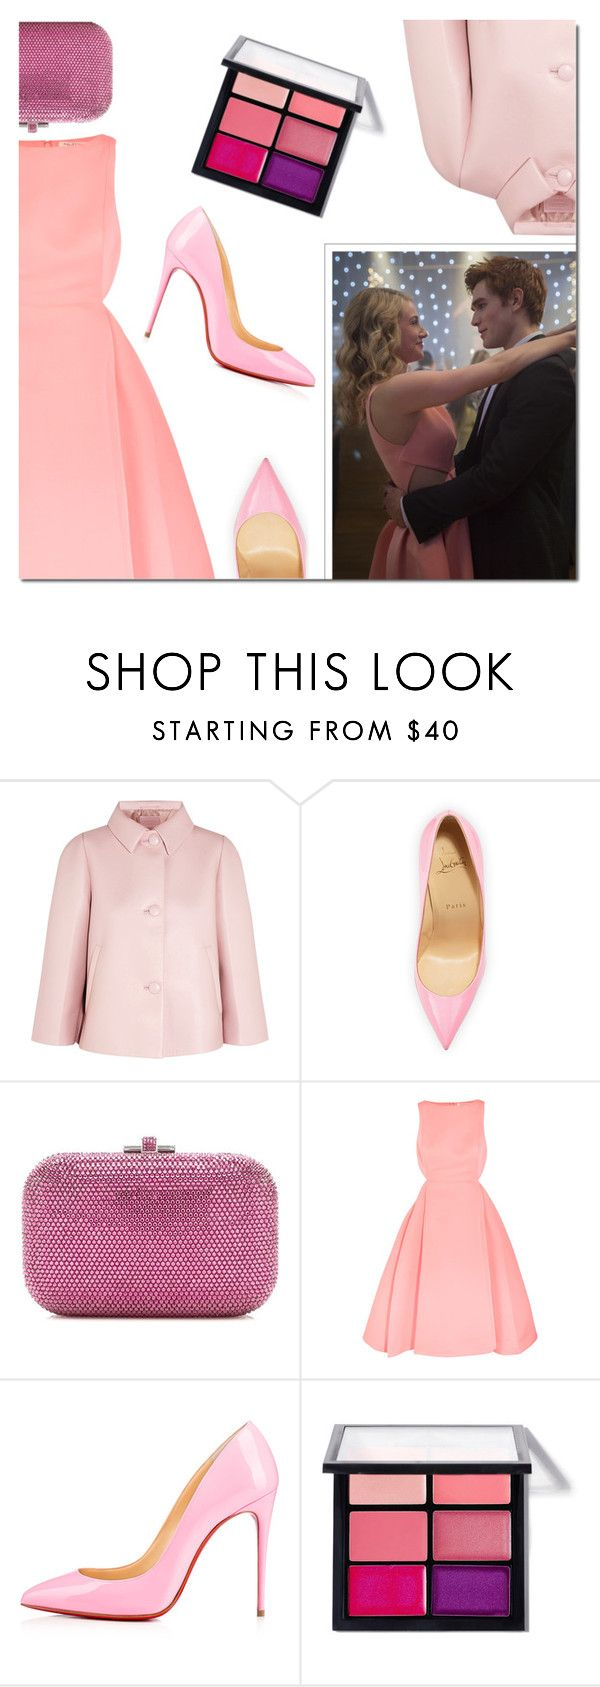 """""""Riverdale: Betty Cooper"""" by danielle-487 ❤ liked on Polyvore featuring Prada, Christian Louboutin, Judith Leiber, Halston Heritage and MAC Cosmetics"""